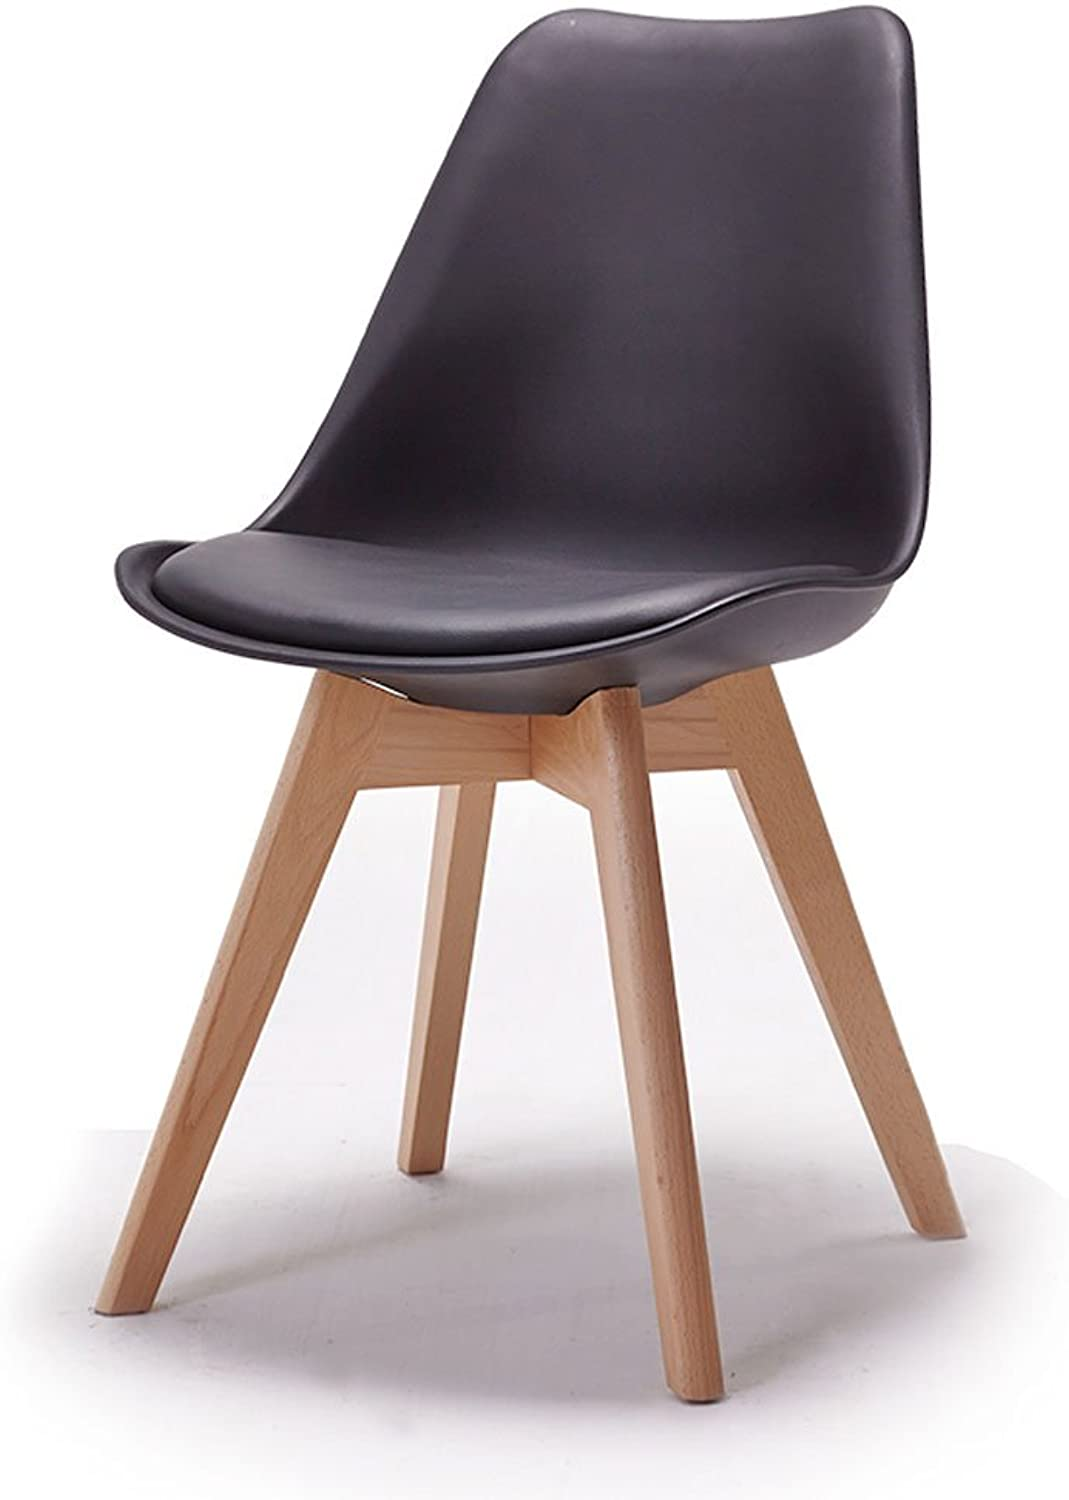 JCRNJSB? leisure chair Creative dining chair Modern minimalist Solid wood plastic Cafe Negotiate chair Removable round Short leg sofa stool Wooden benc (color   Black)